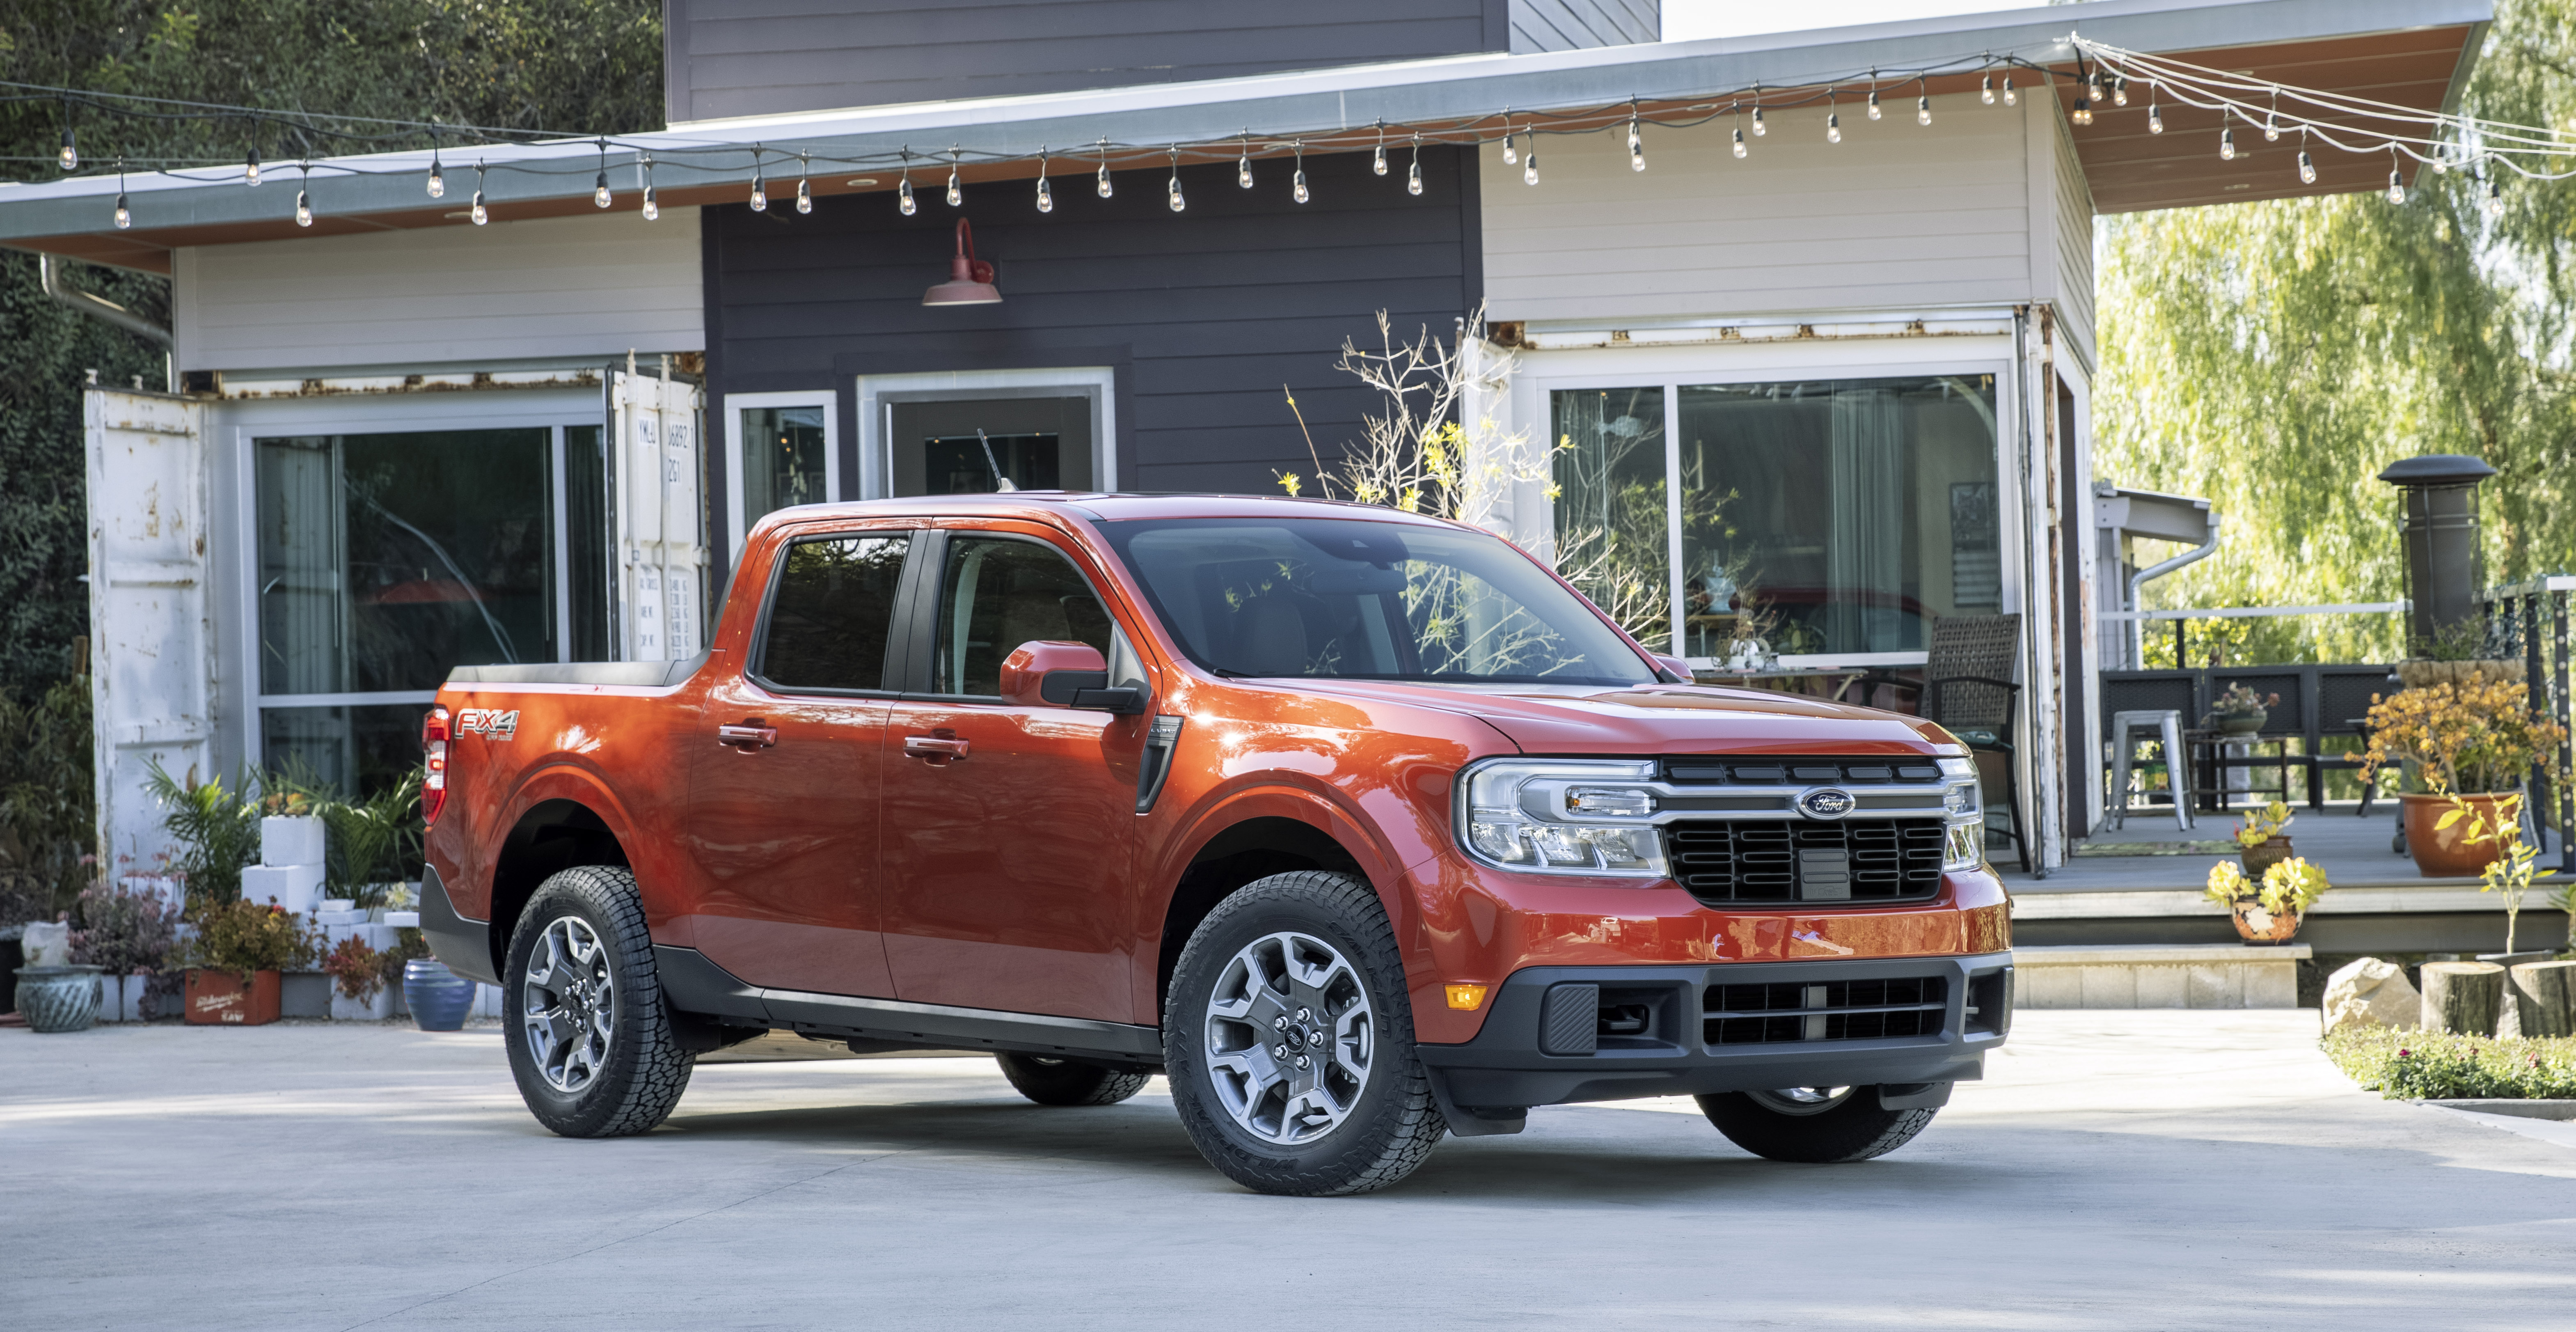 The 2022 Ford Maverick will be the first standard hybrid pickup truck in America and reportedly the most fuel-efficient truck on the market